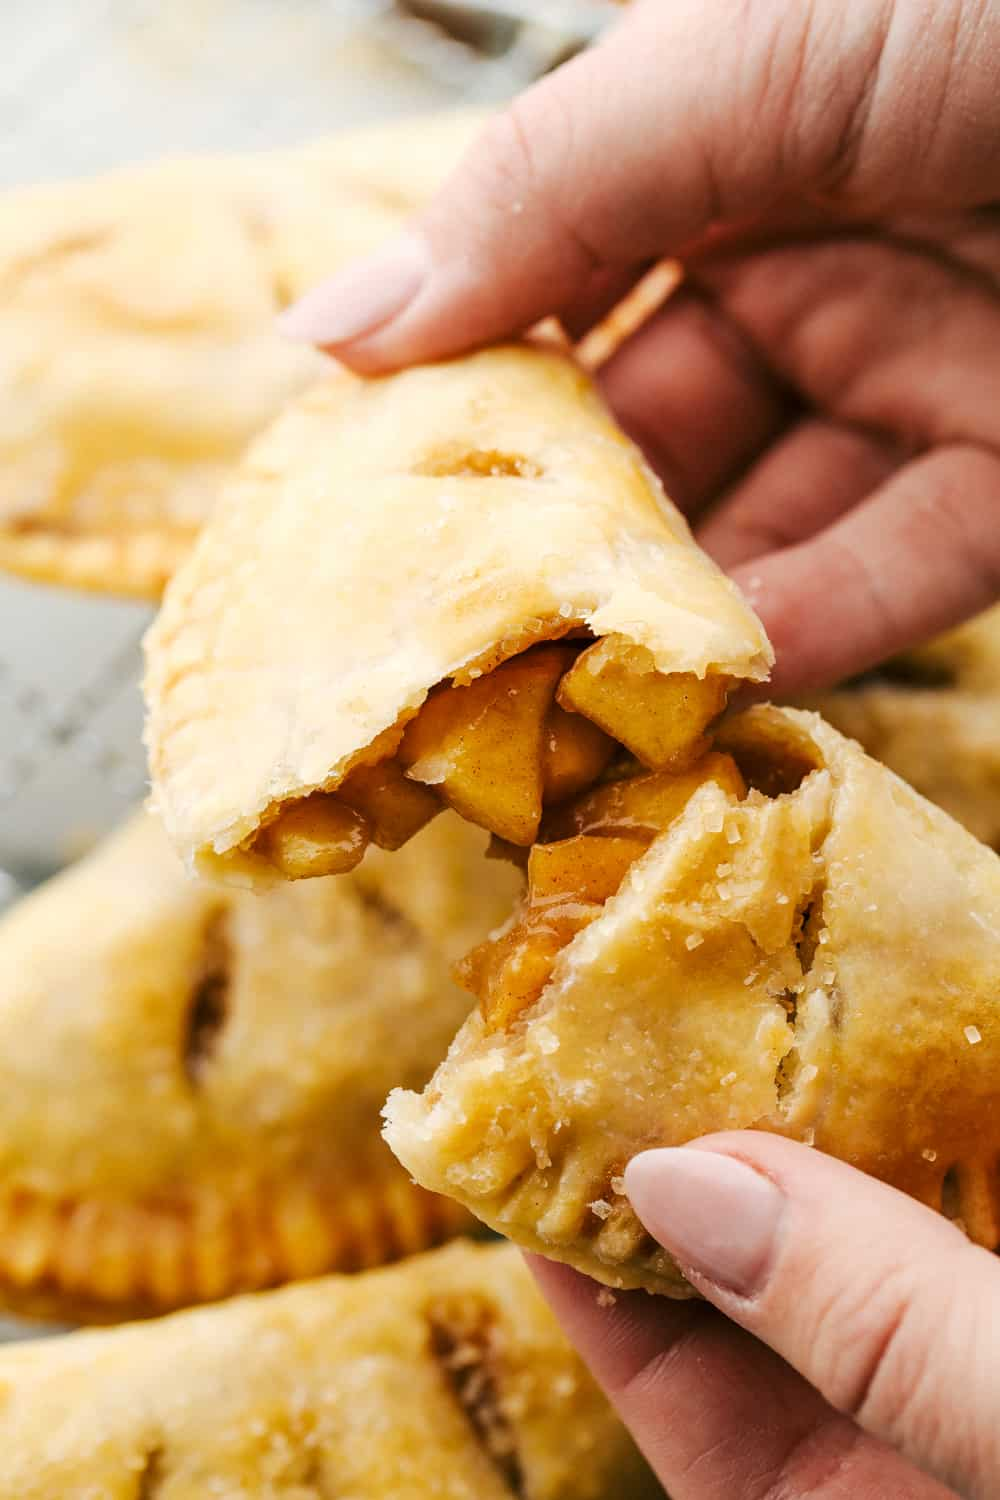 Breaking a hand held pie exposing the amazing filling.